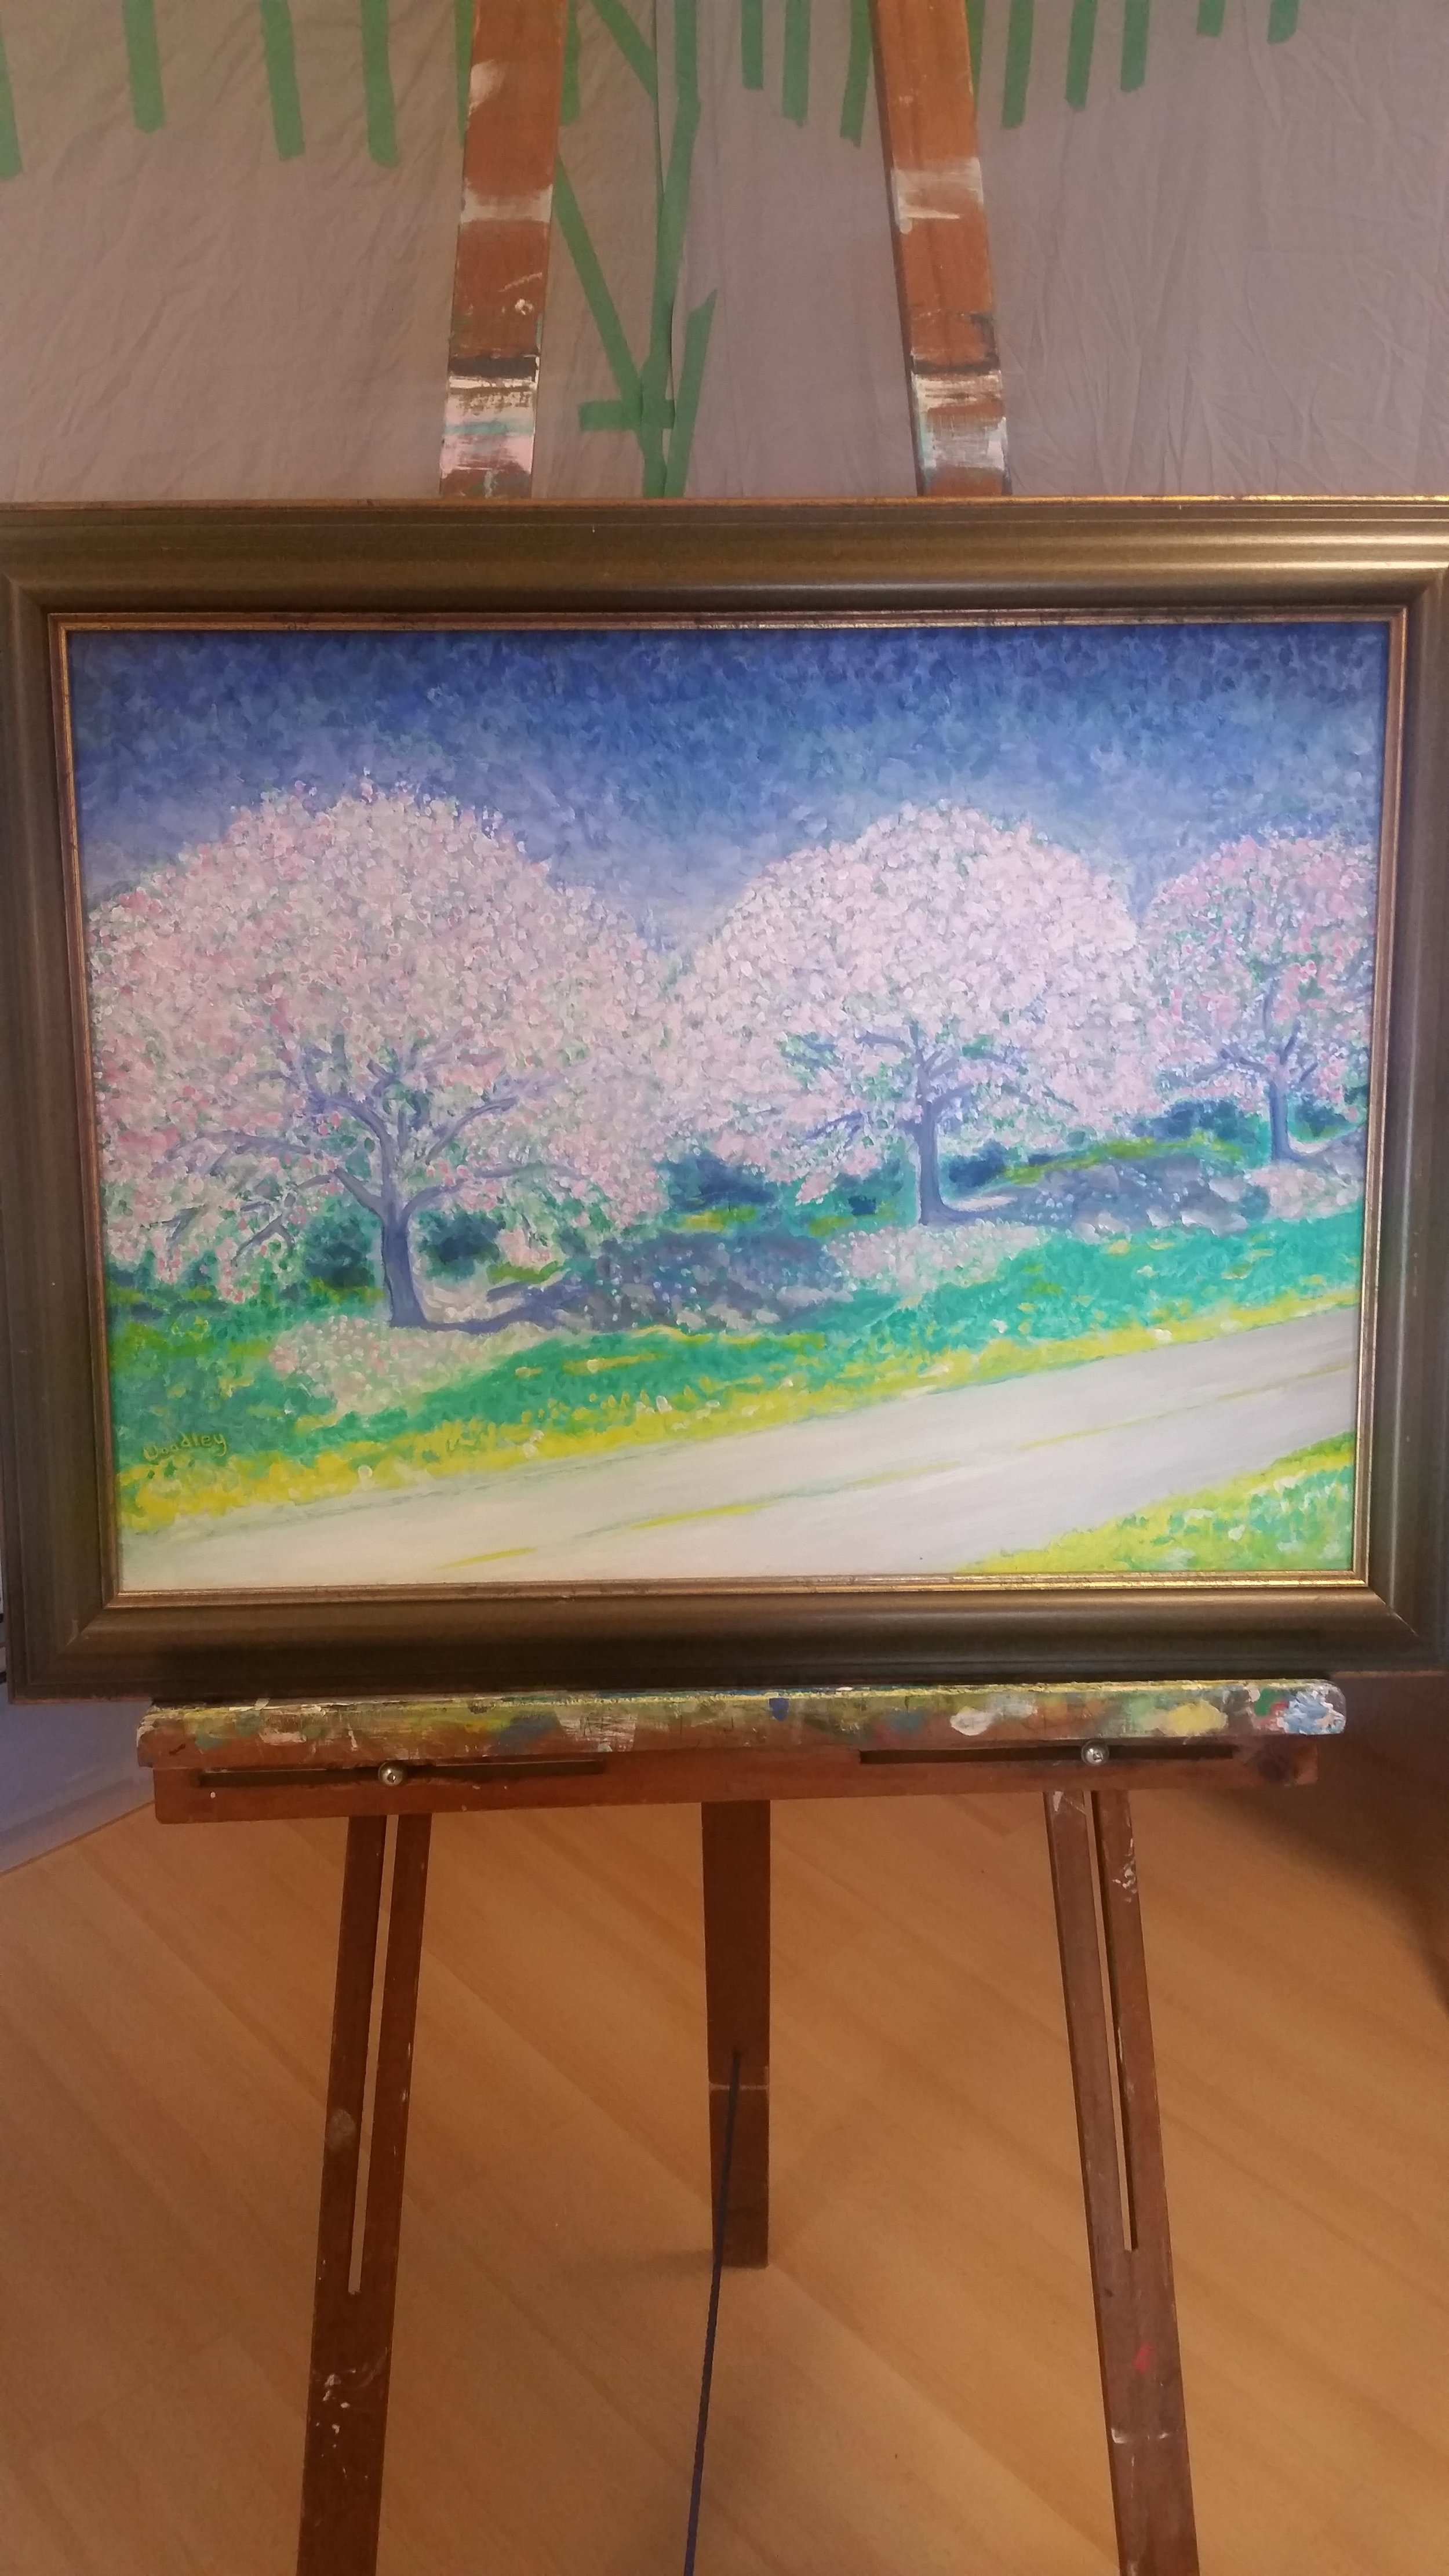 On the easel in Sharon Woodley's studio